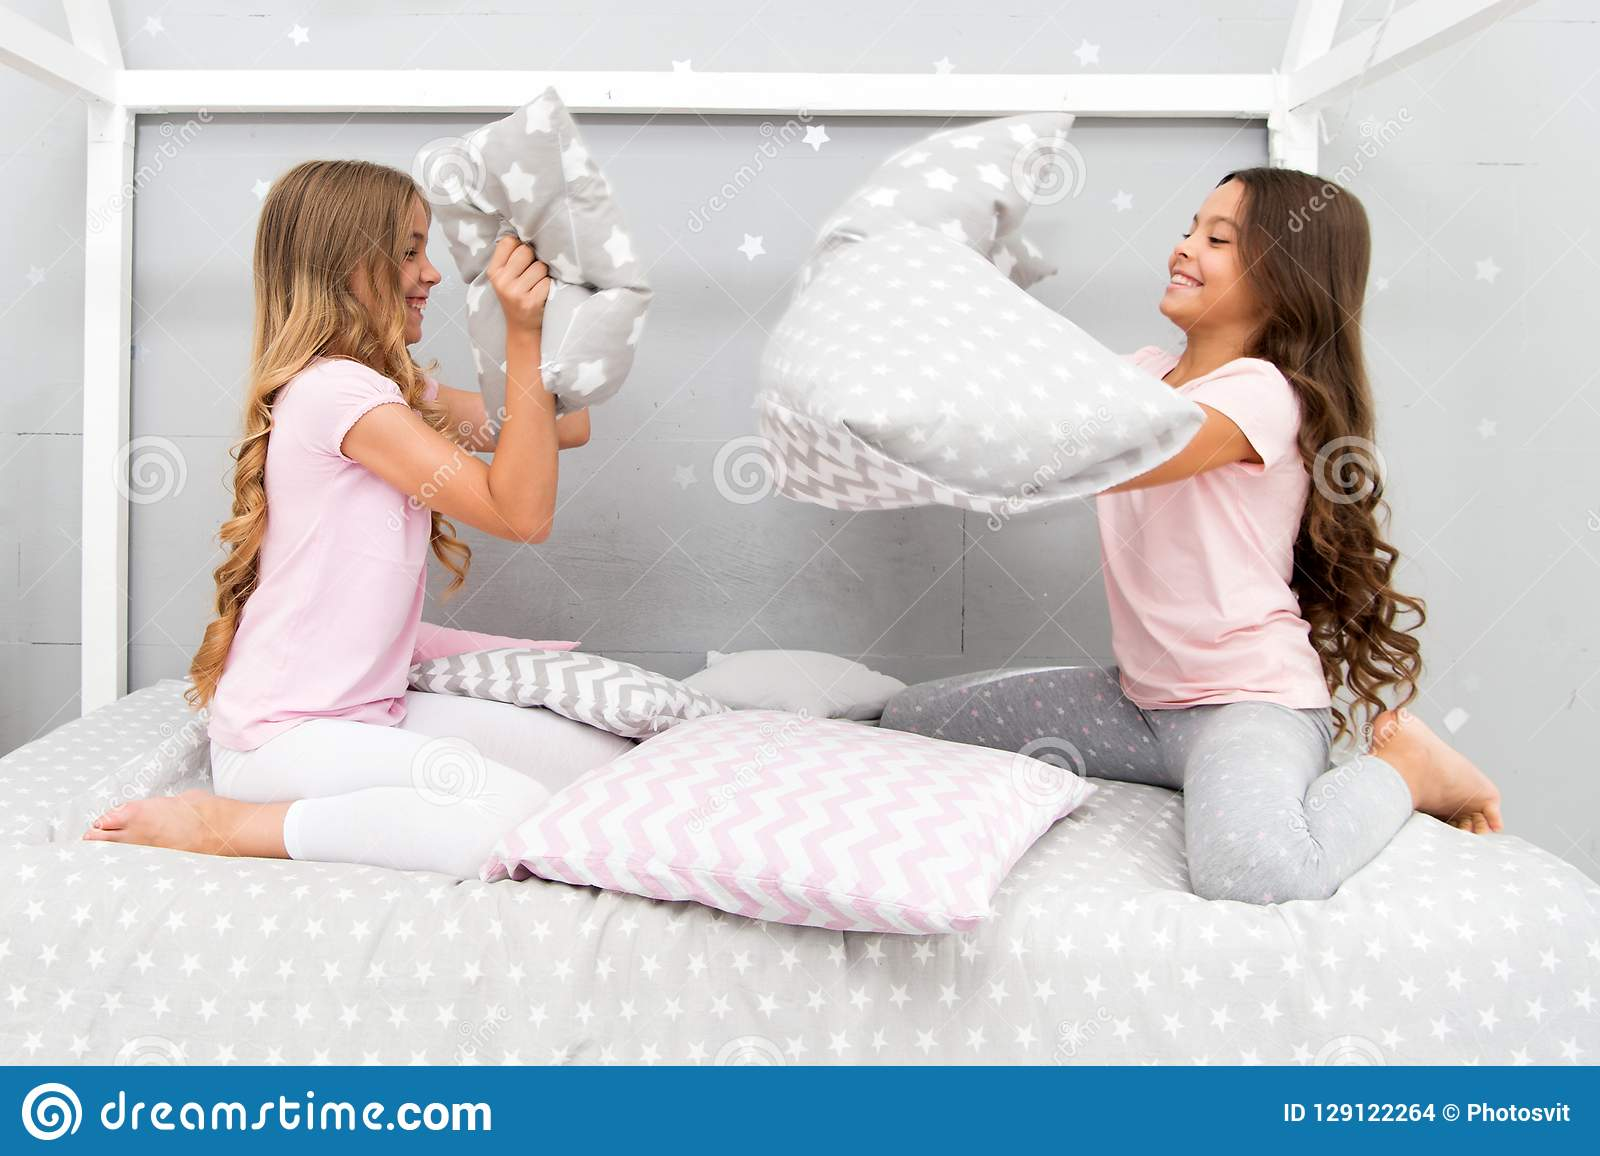 f23106a5dd Soulmates girls having fun sleepover party. Pillow fight pajama party. Sleepover  time for fun. Best girls sleepover party ideas. Girls happy best friends in  ...